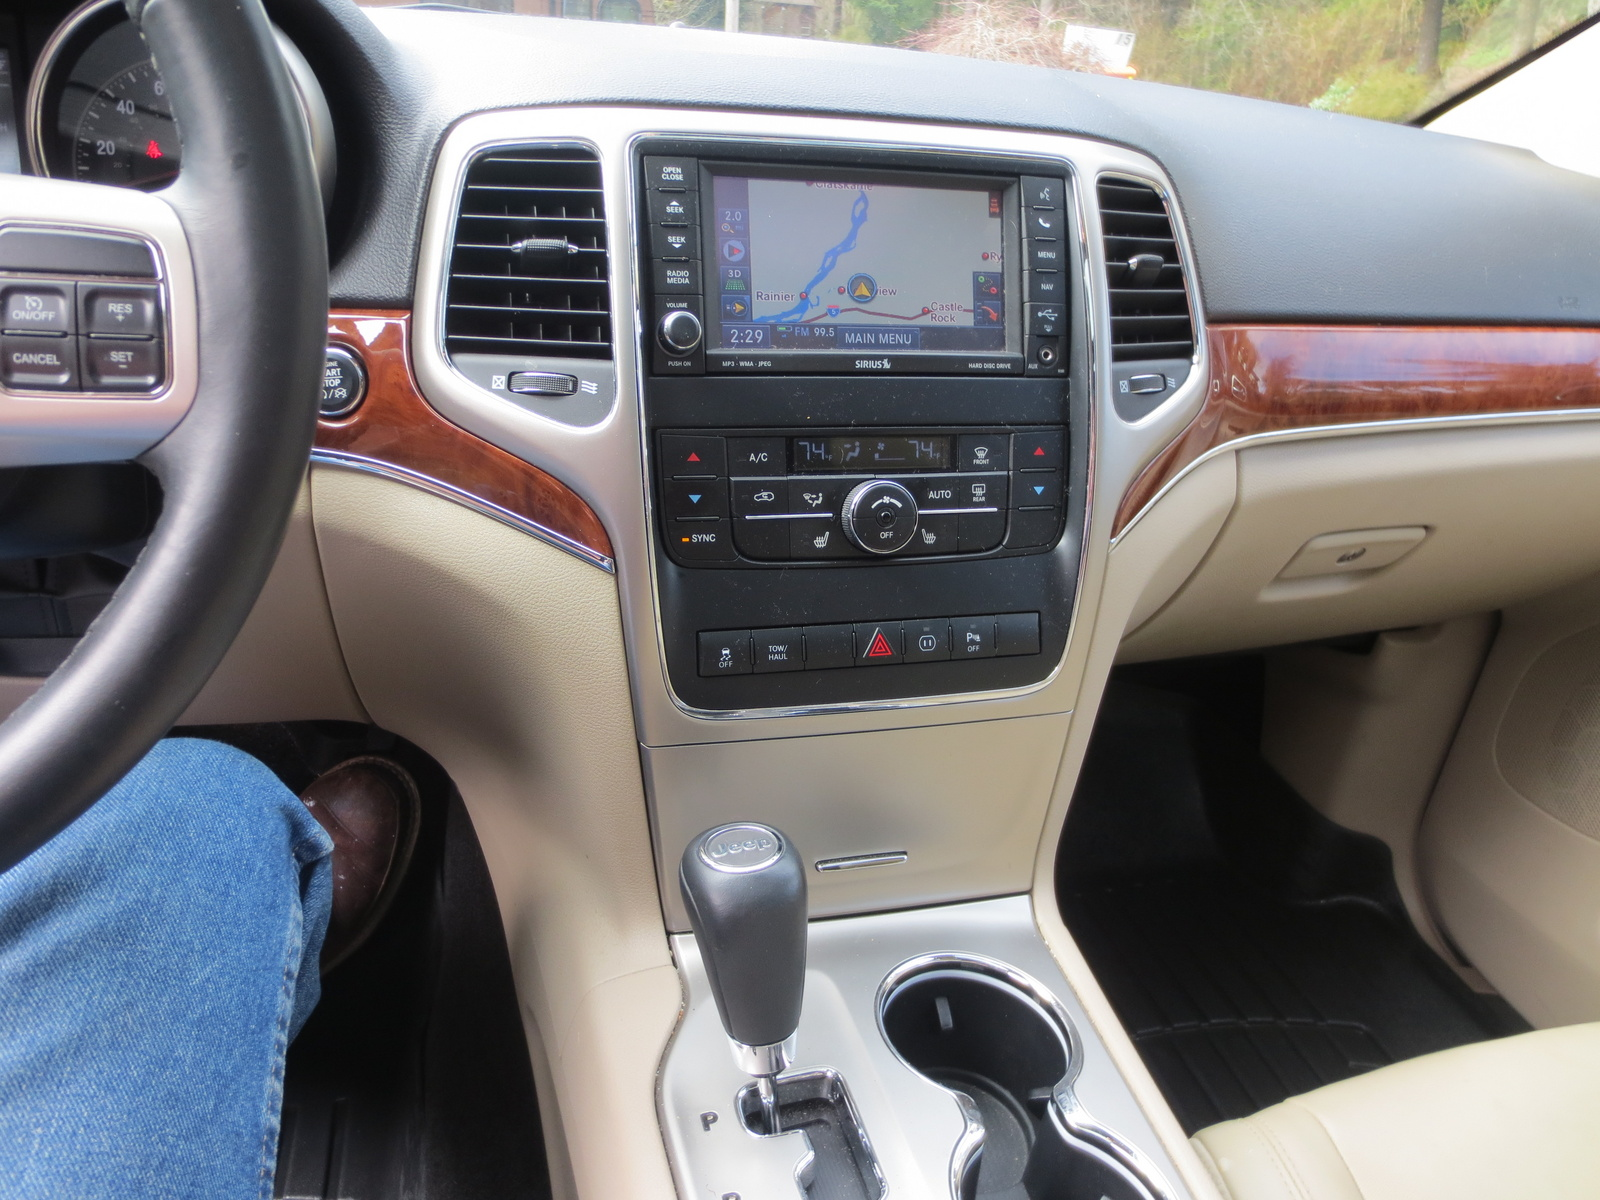 2011 Jeep Grand Cherokee - Pictures - CarGurus